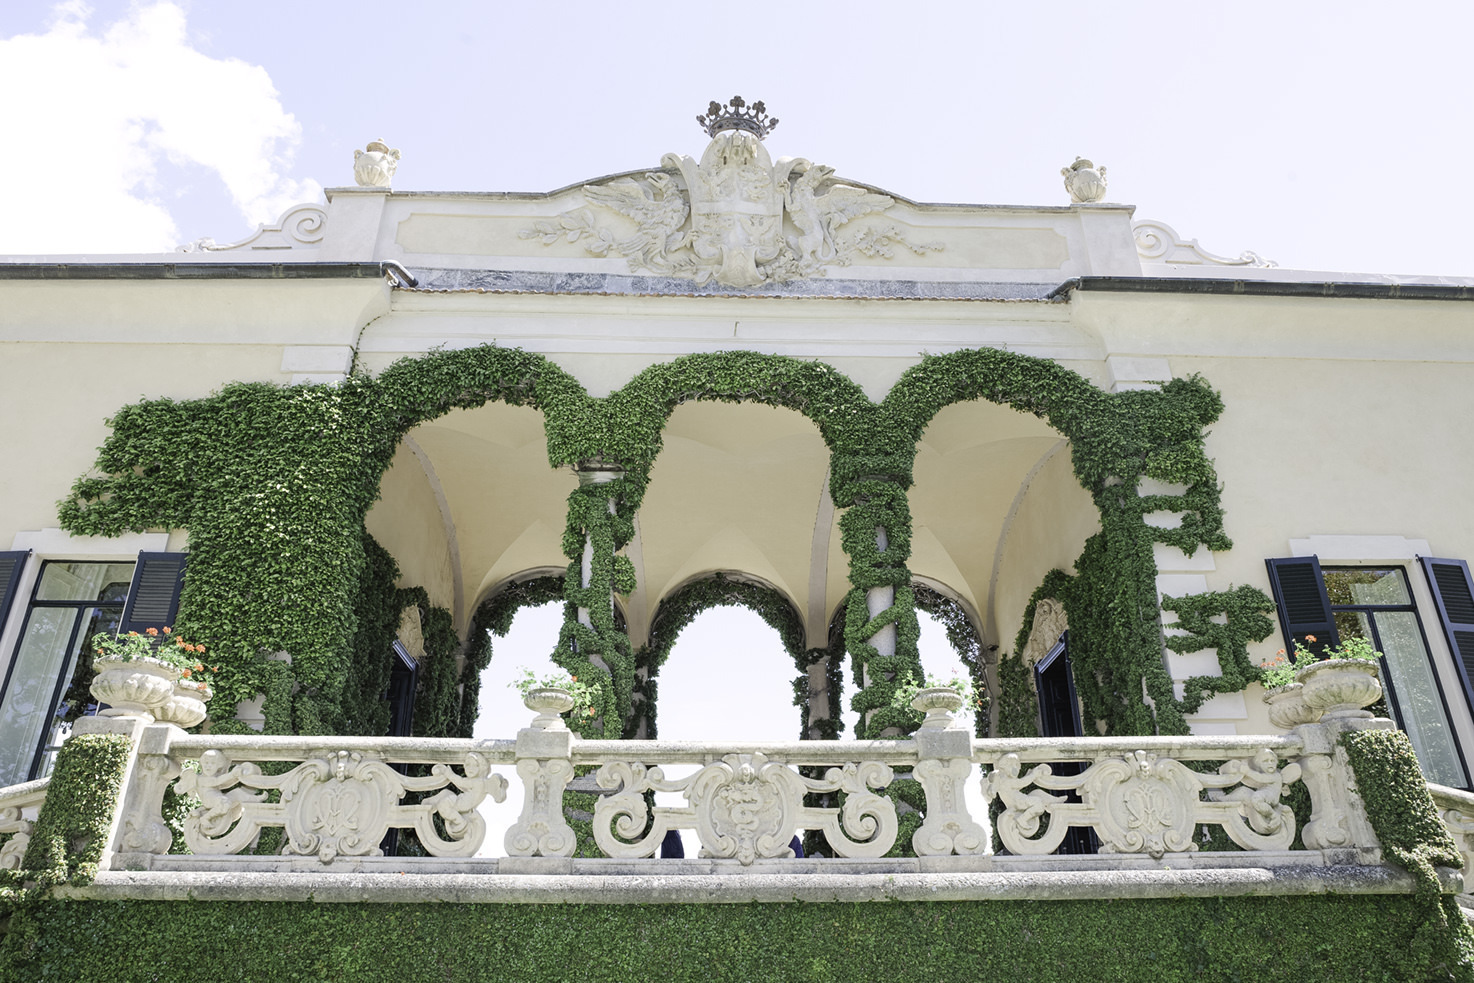 Detail of the Loggia